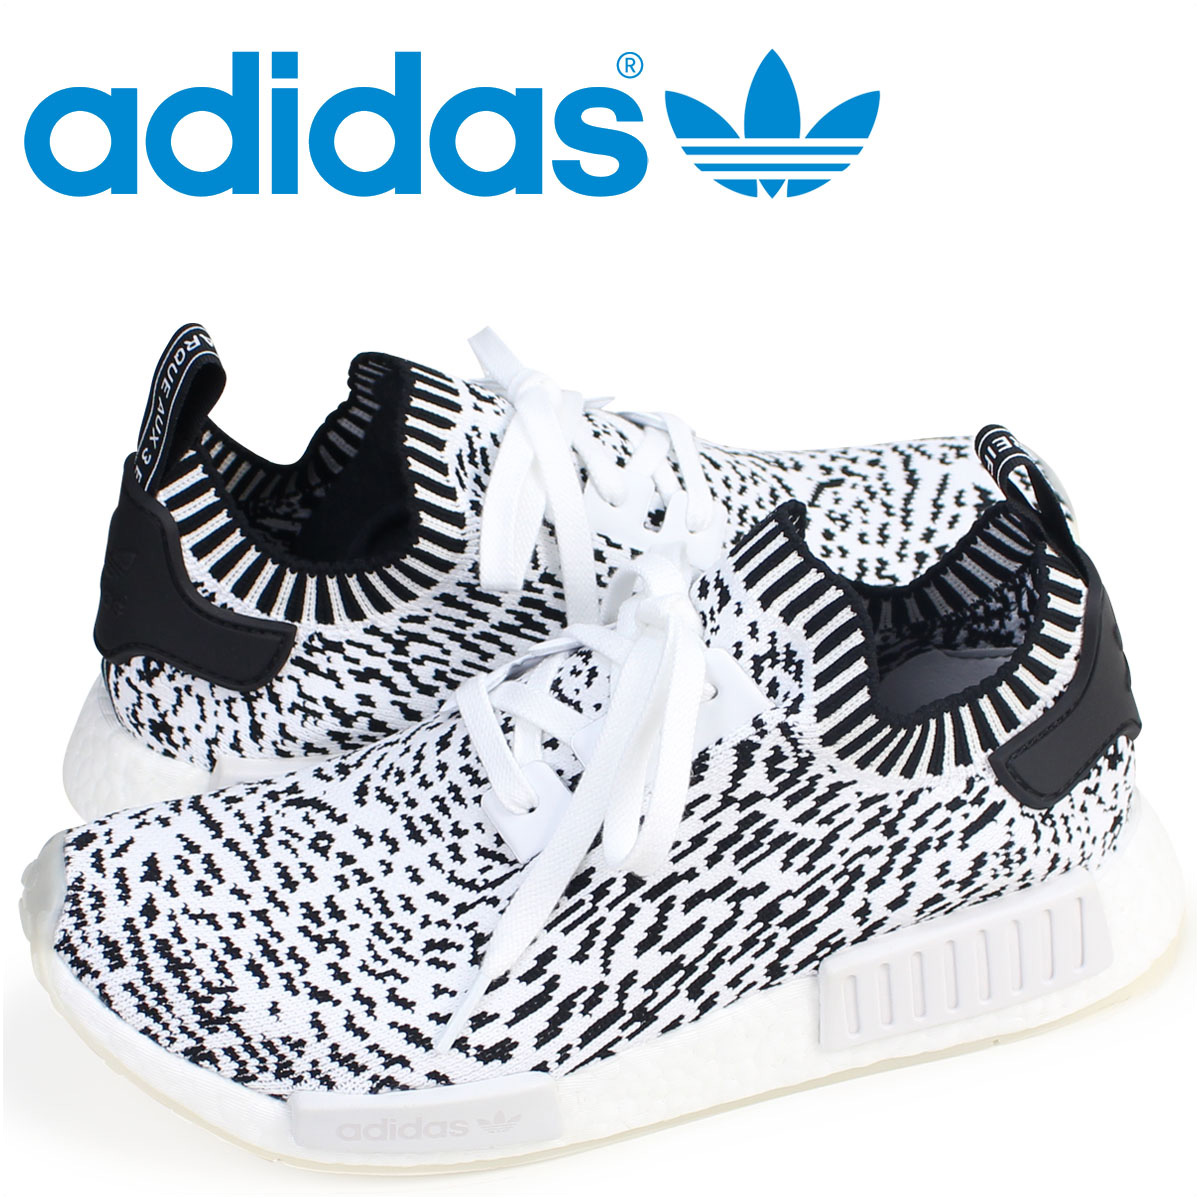 reputable site 6d55a 3806d adidas NMD R1 PK Adidas Originals sneakers N M D nomad men BZ0219 ZEBRA  PACK shoes white white